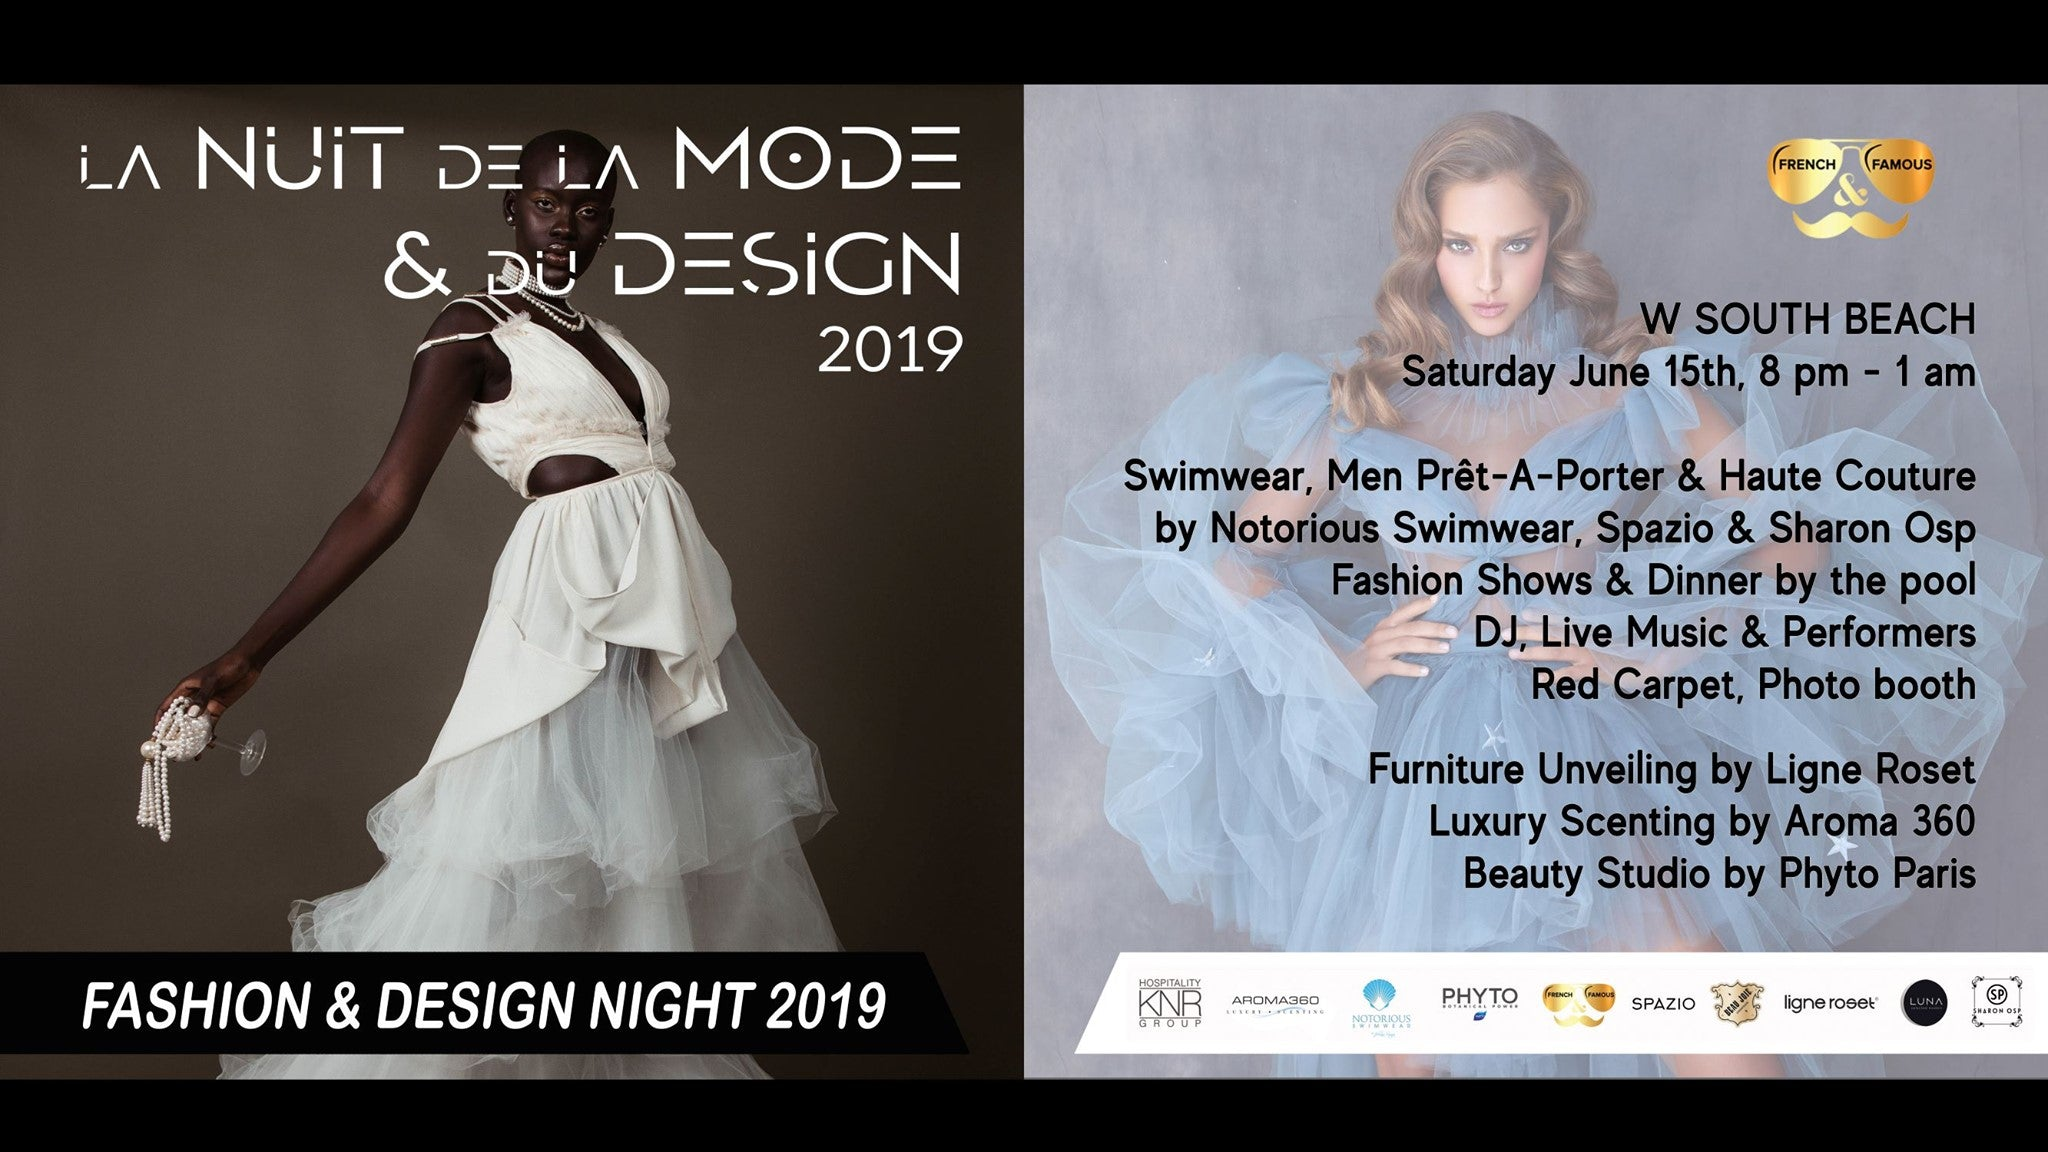 La Nuit de la Mode et du Design 2019 by French & Famous